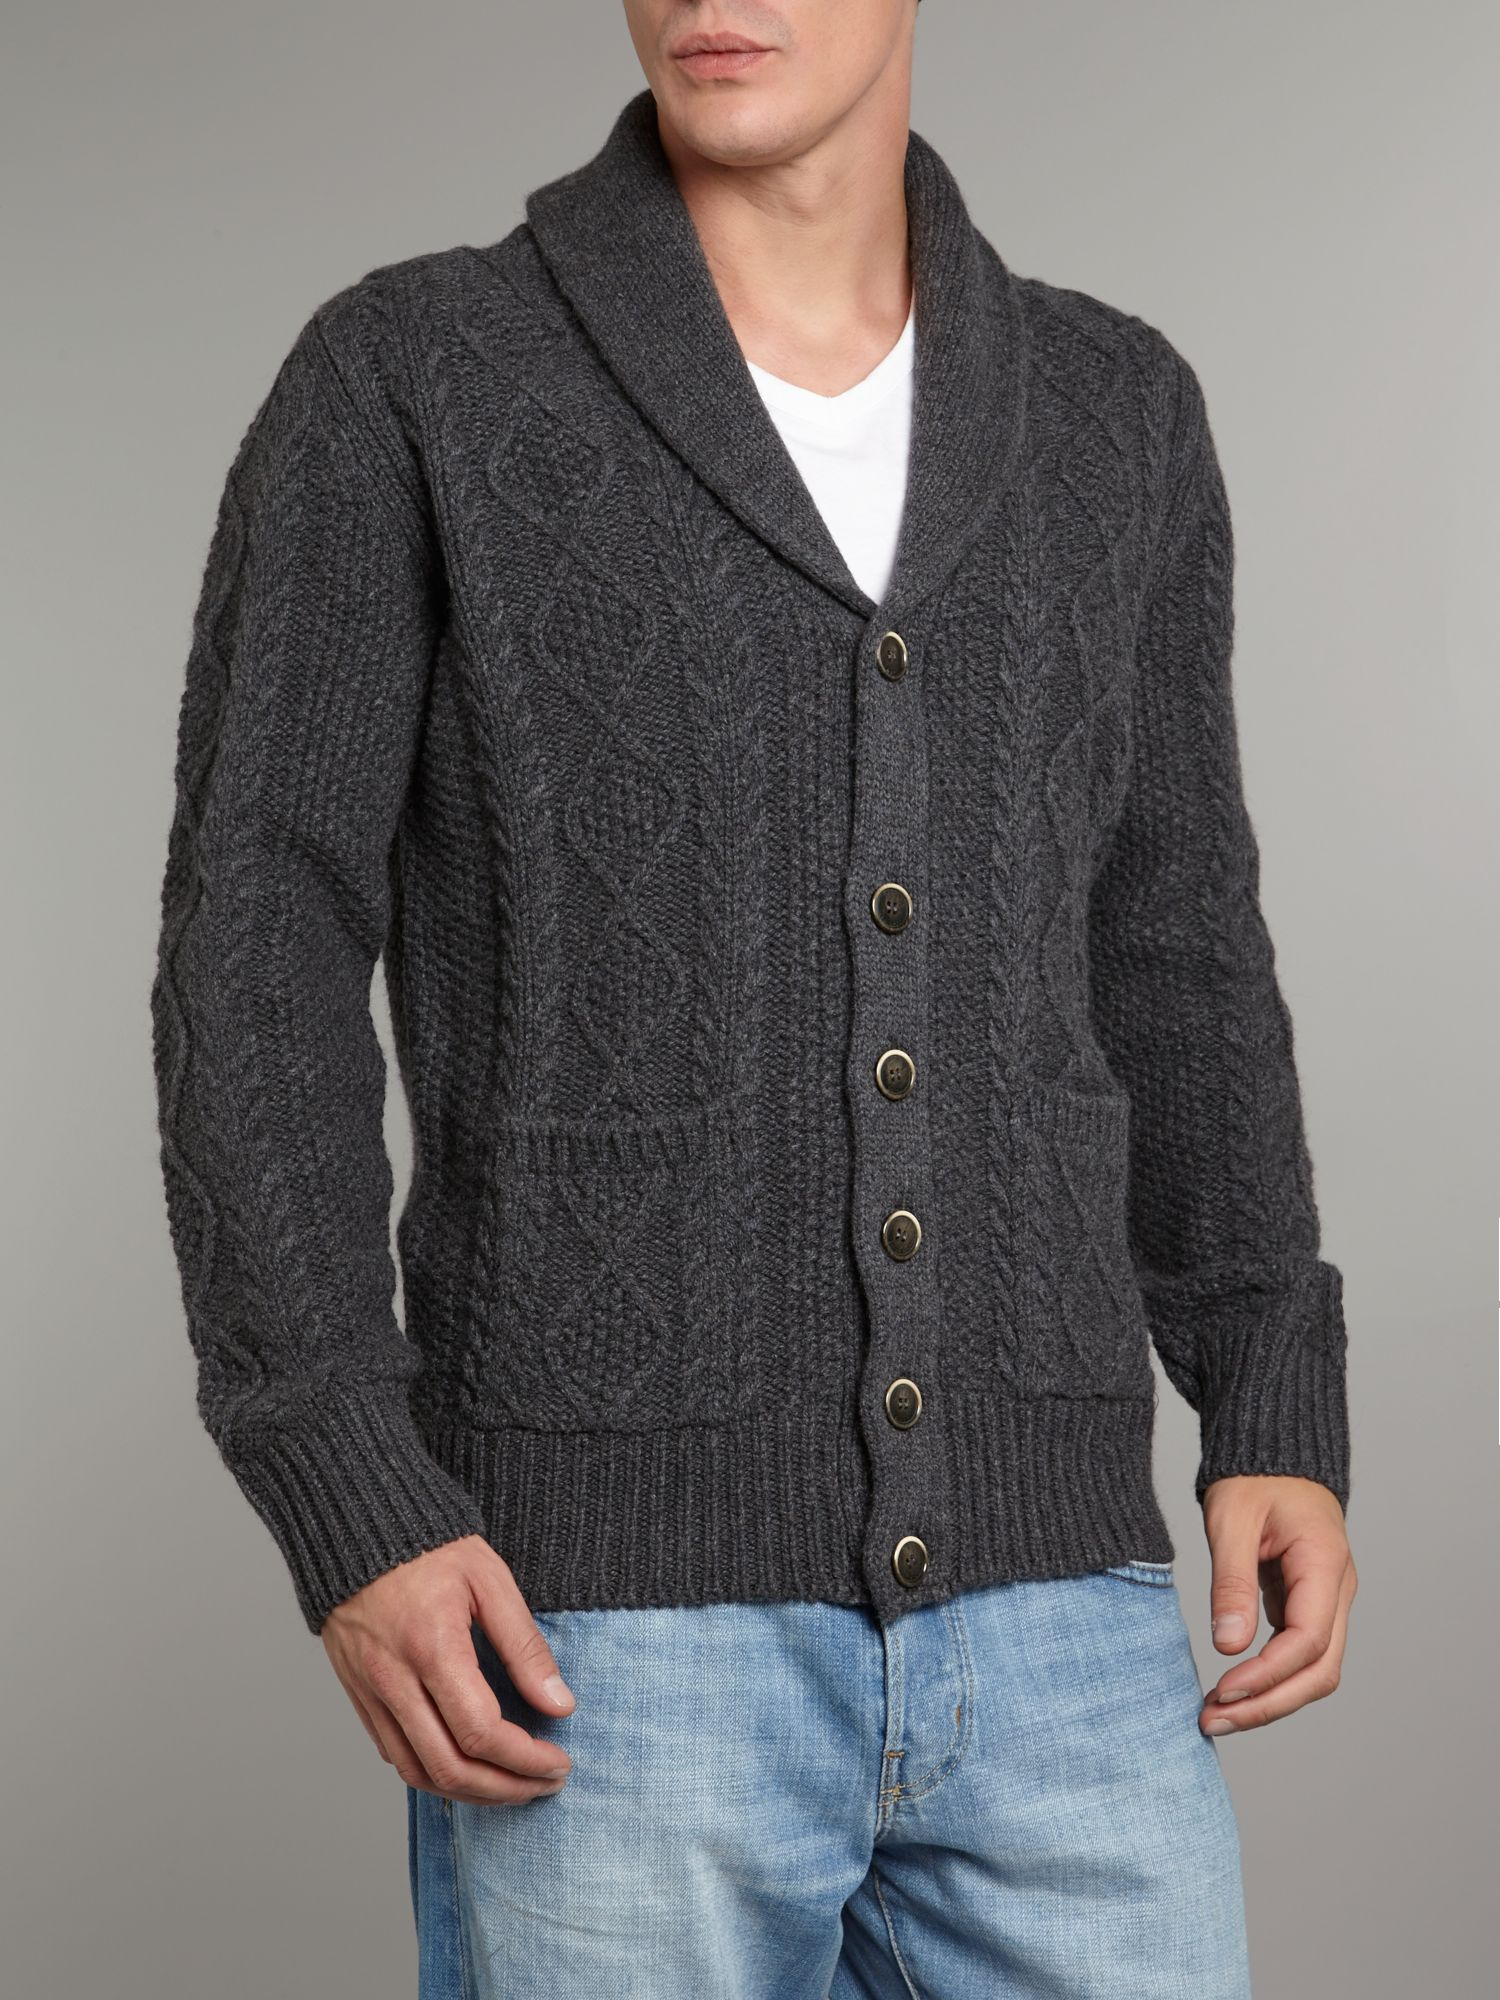 Multi shawl knit cardigan